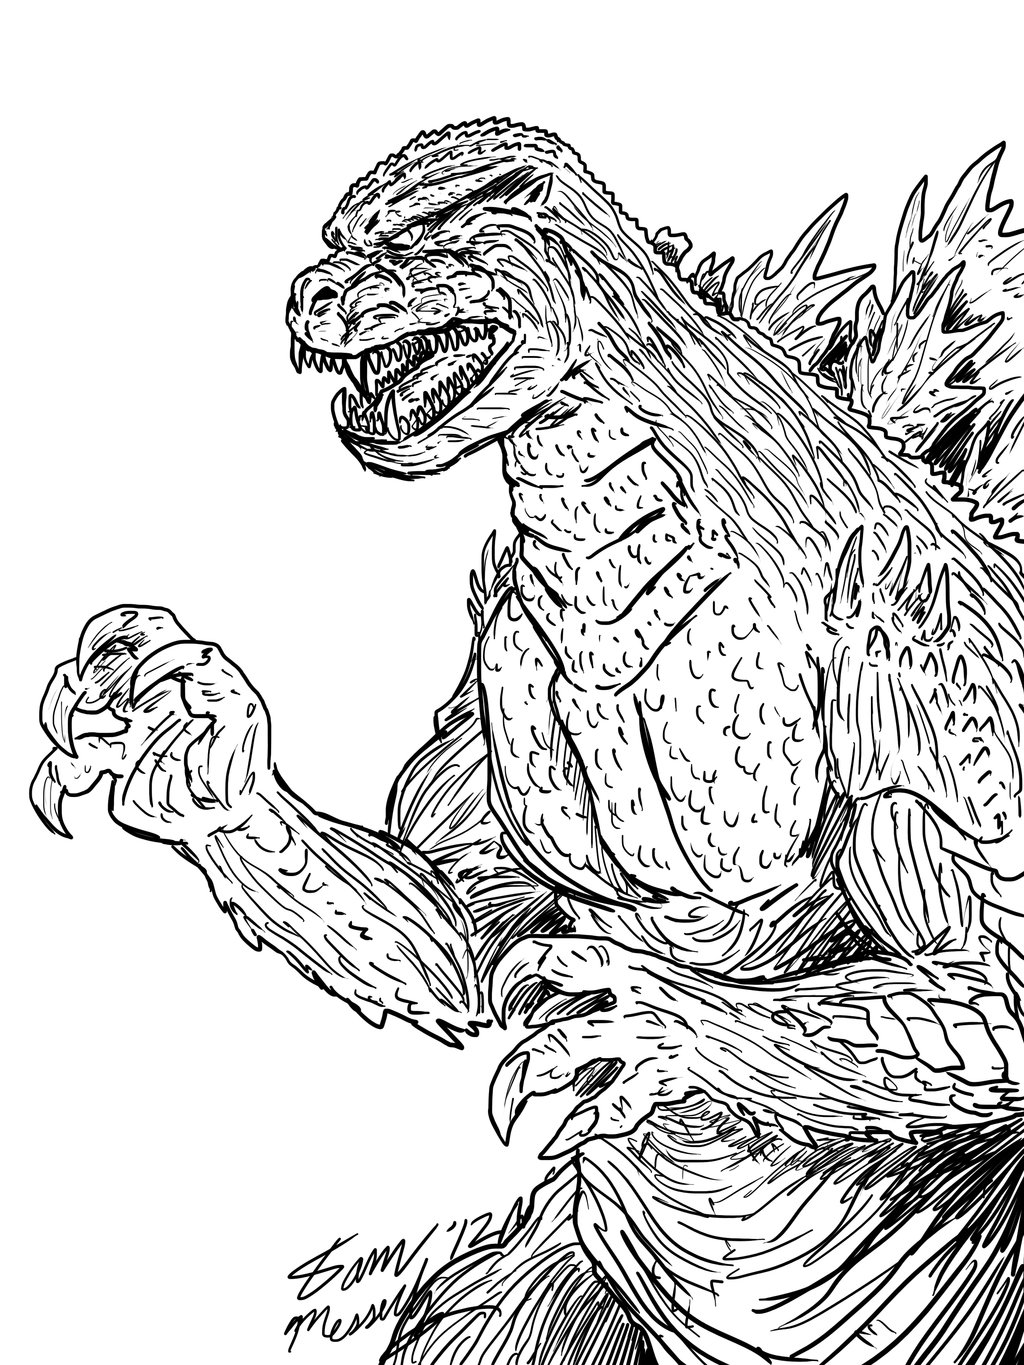 king kong vs godzilla dessins à colorier coloriage enfants